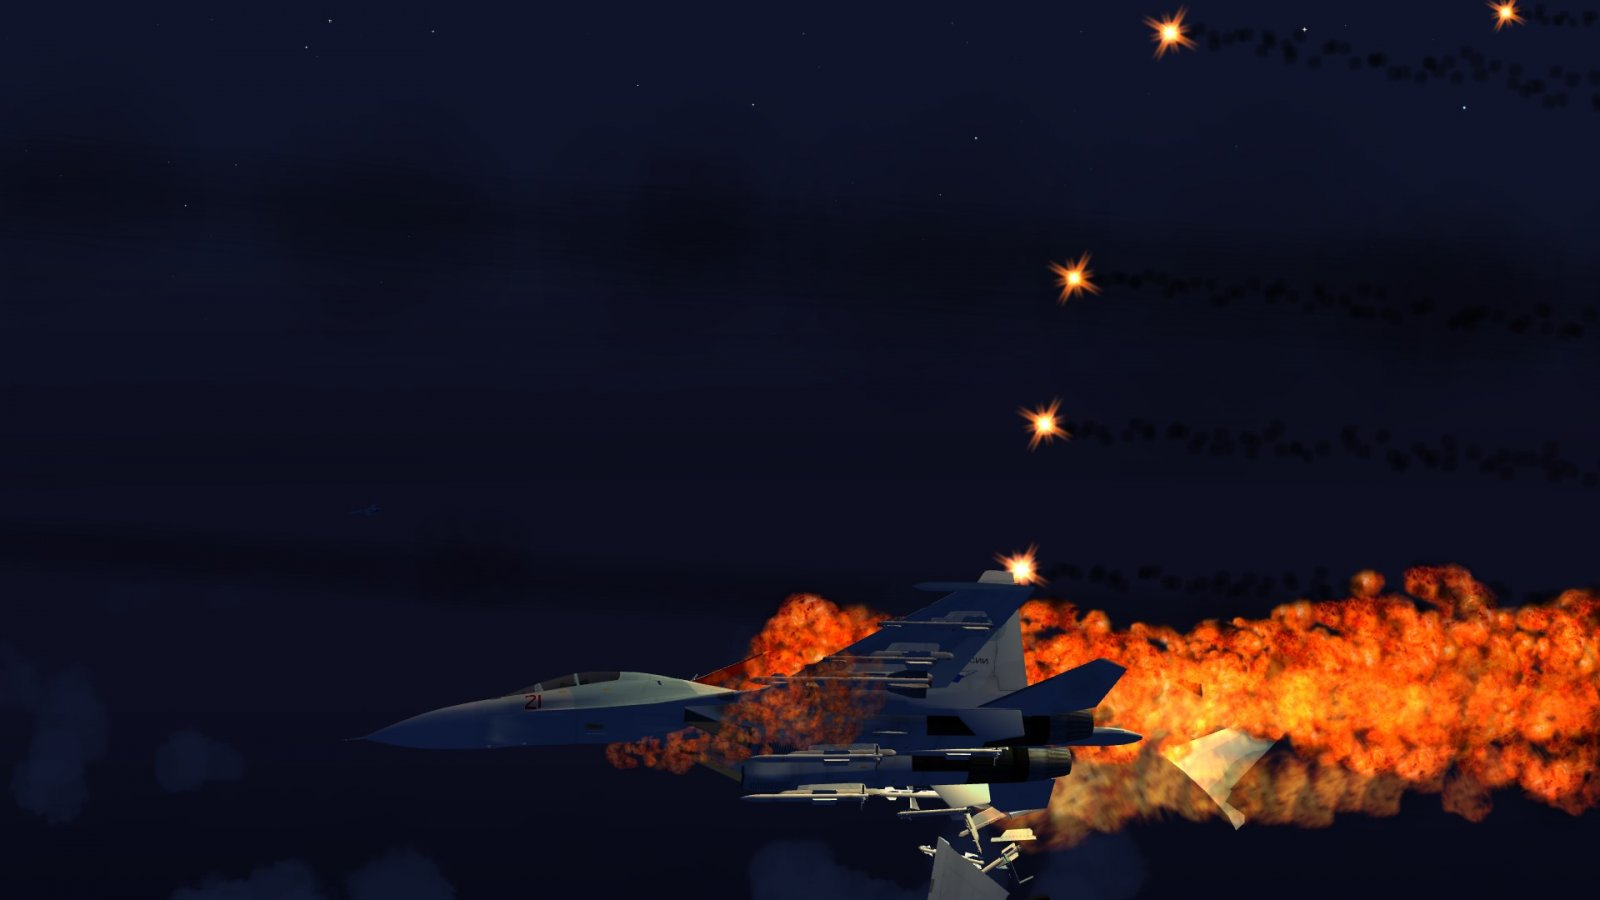 Guess those flares didn't work for the Su-30